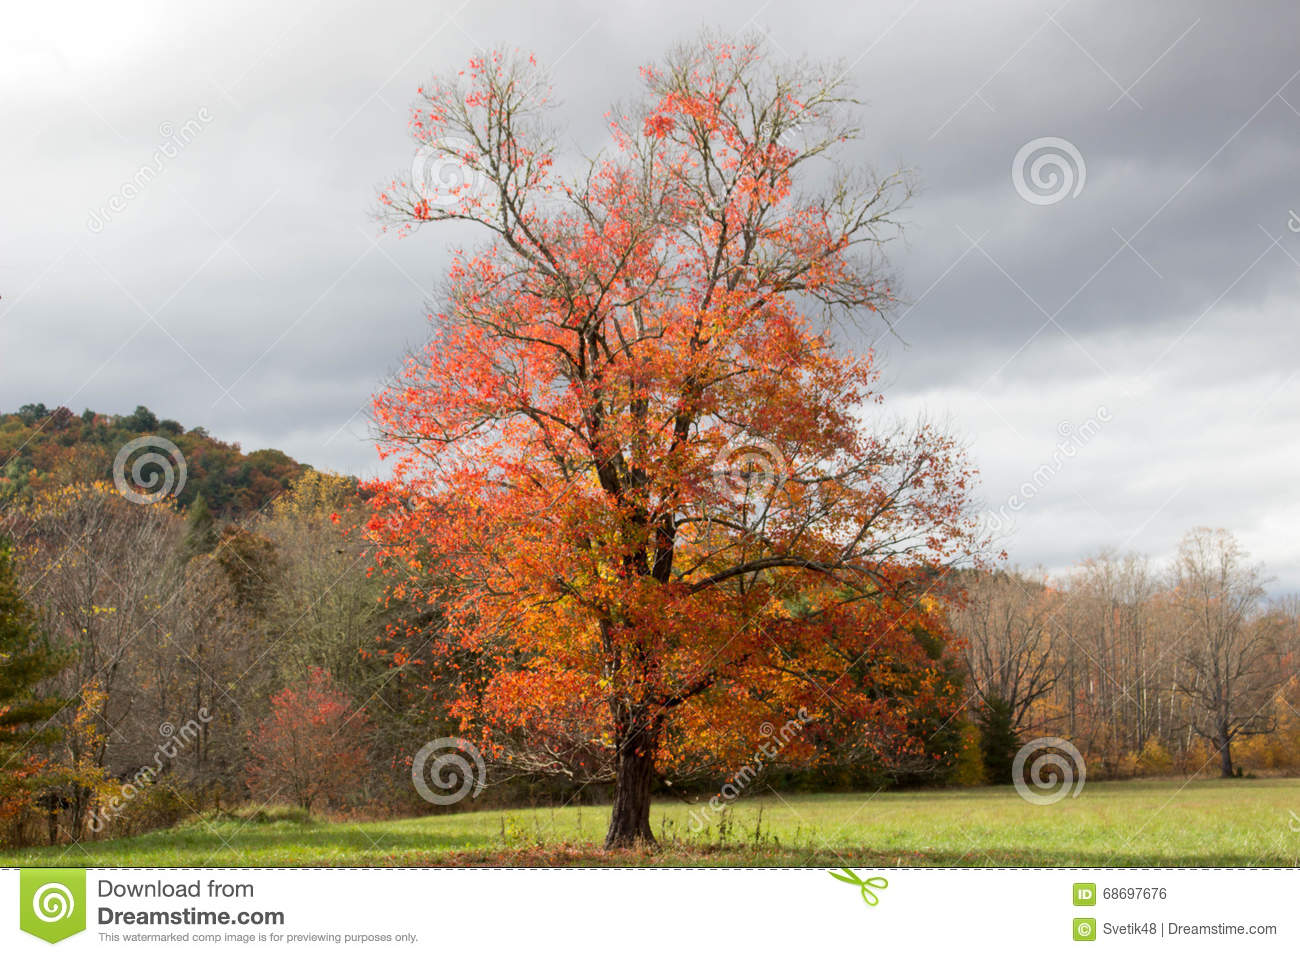 arbres d 39 automne dans un jour nuageux tennessee photo stock image du surplomber sc nique. Black Bedroom Furniture Sets. Home Design Ideas